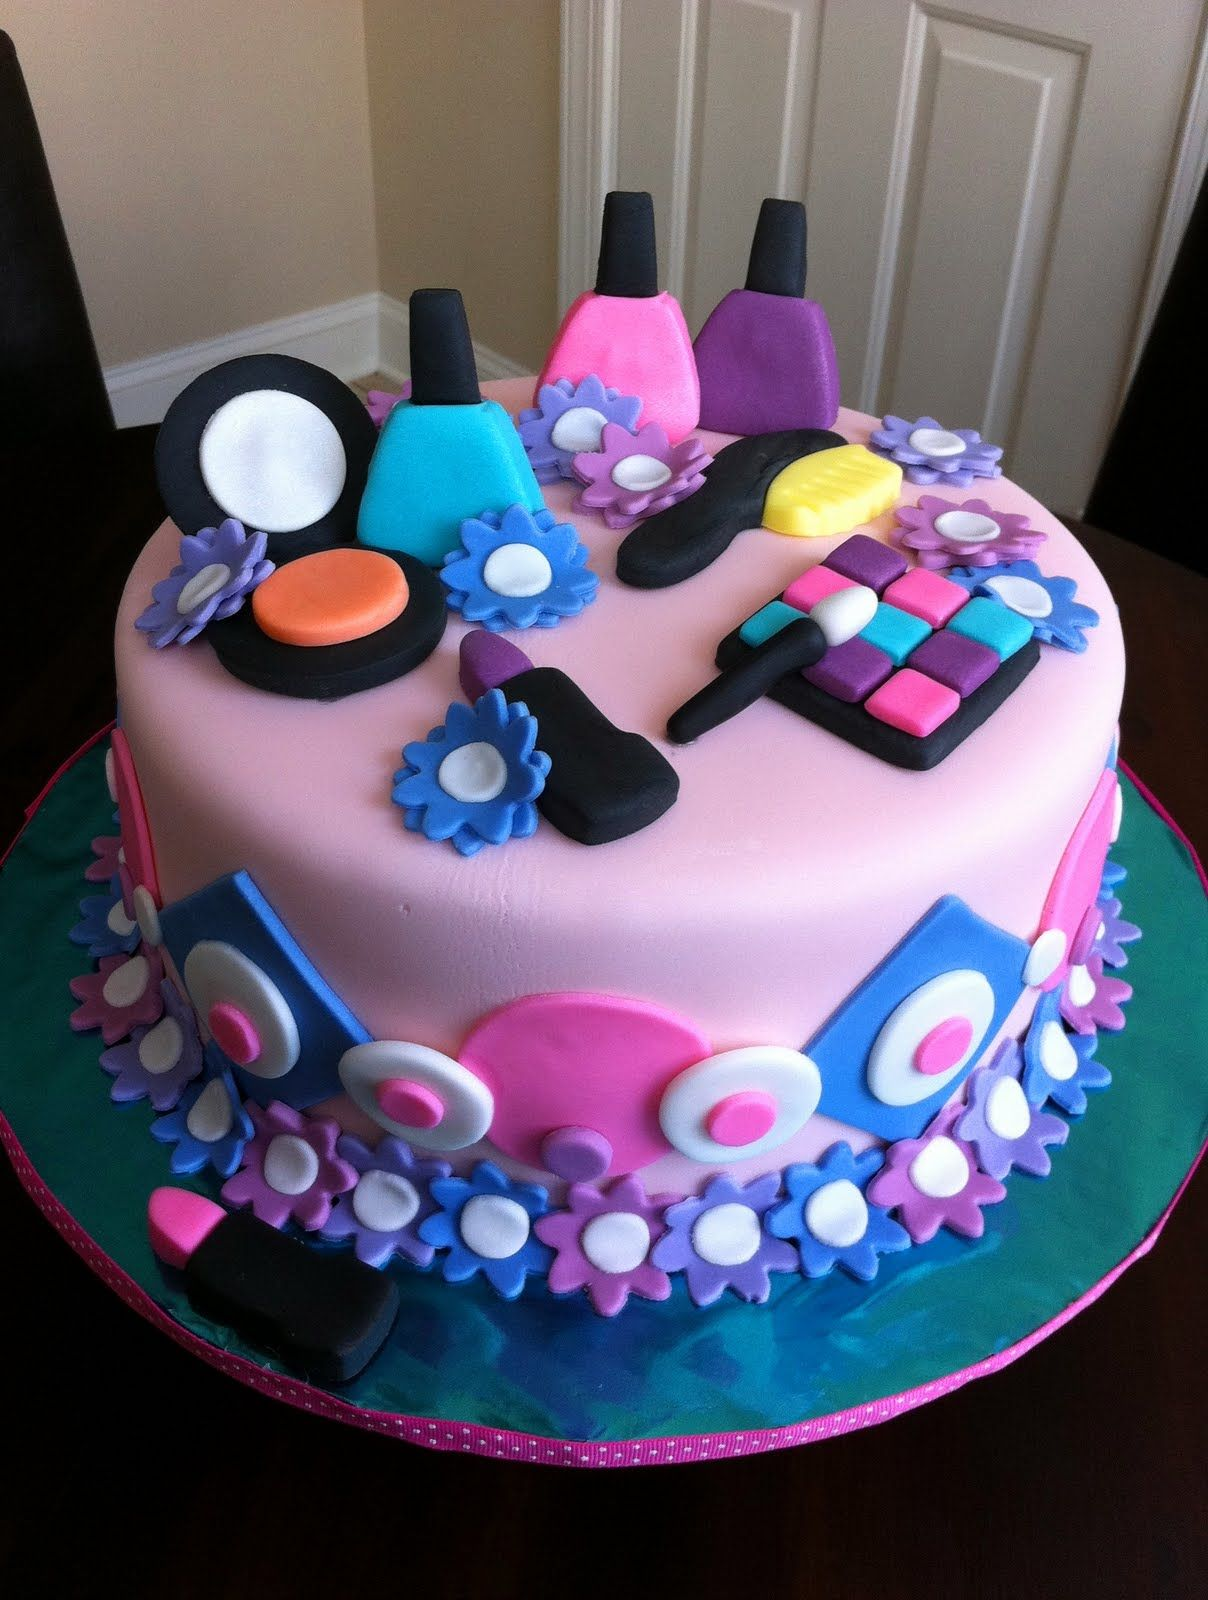 SPA PARTY CAKE IDEAS Spa birthday cake Spa birthday and Spa party